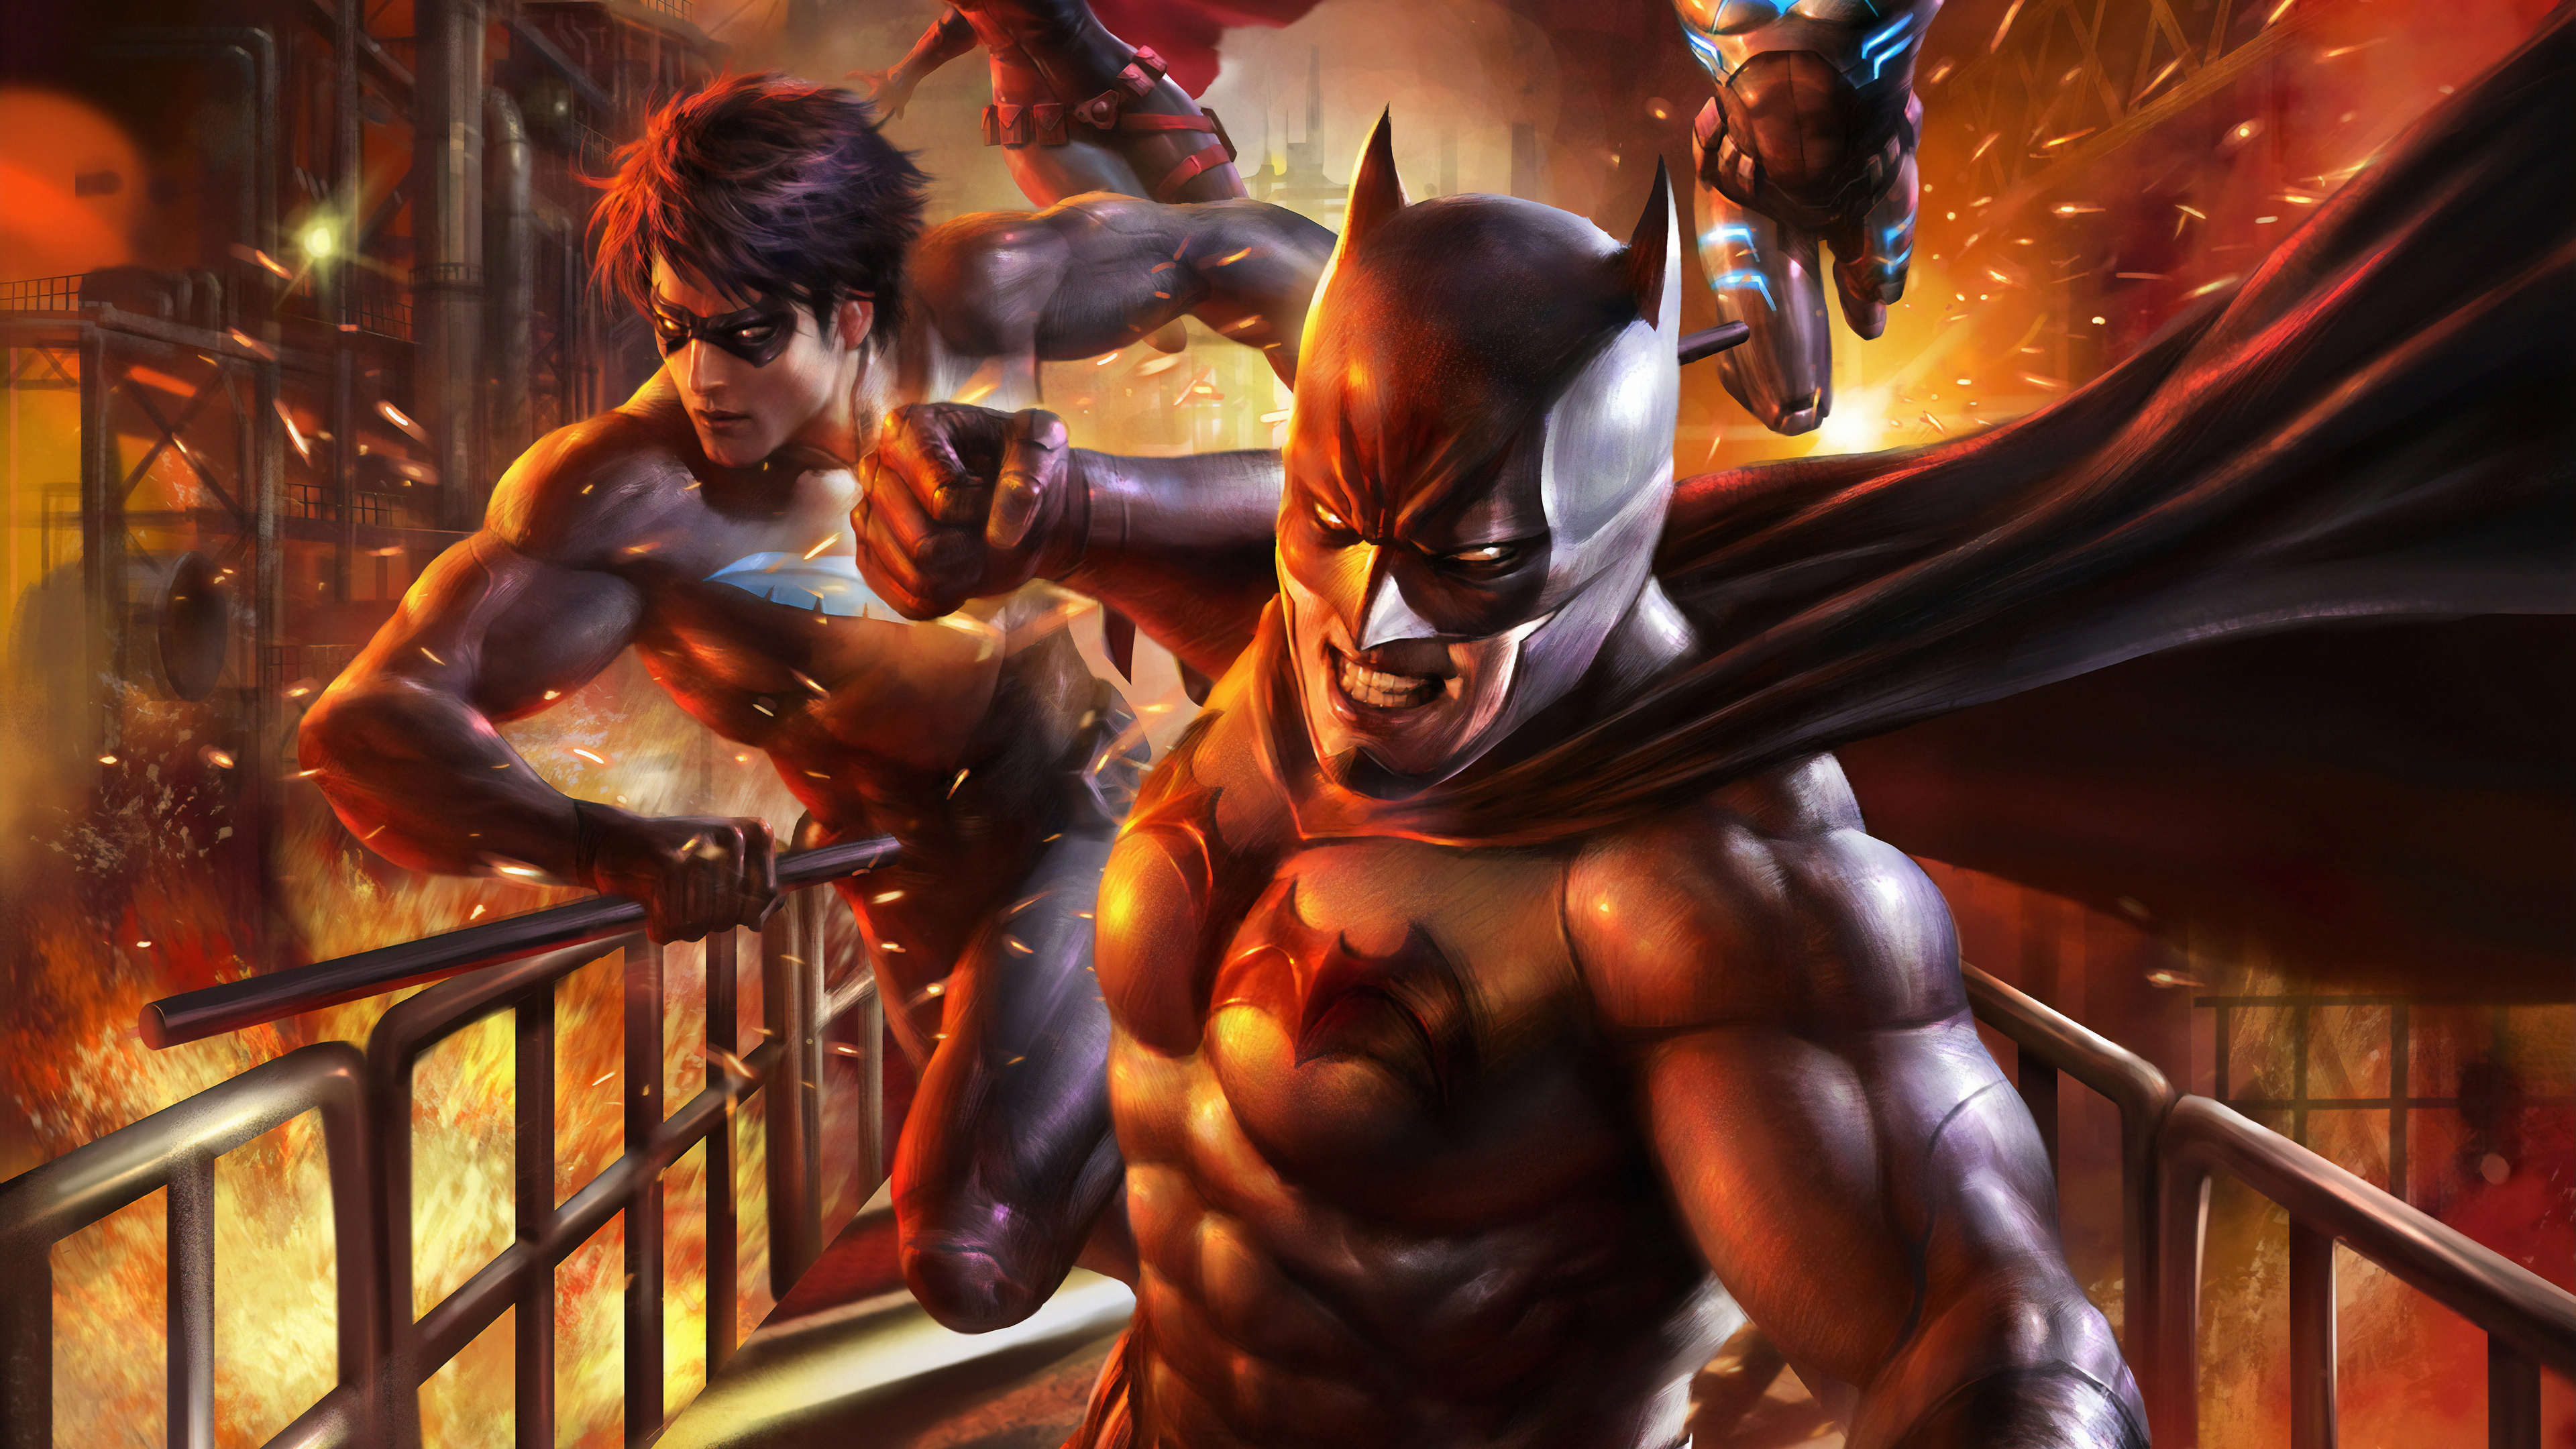 batman and nightwing 1562106237 - Batman And Nightwing - superheroes wallpapers, robin wallpapers, nightwing wallpapers, hd-wallpapers, batman wallpapers, batgirl wallpapers, artwork wallpapers, artstation wallpapers, 4k-wallpapers